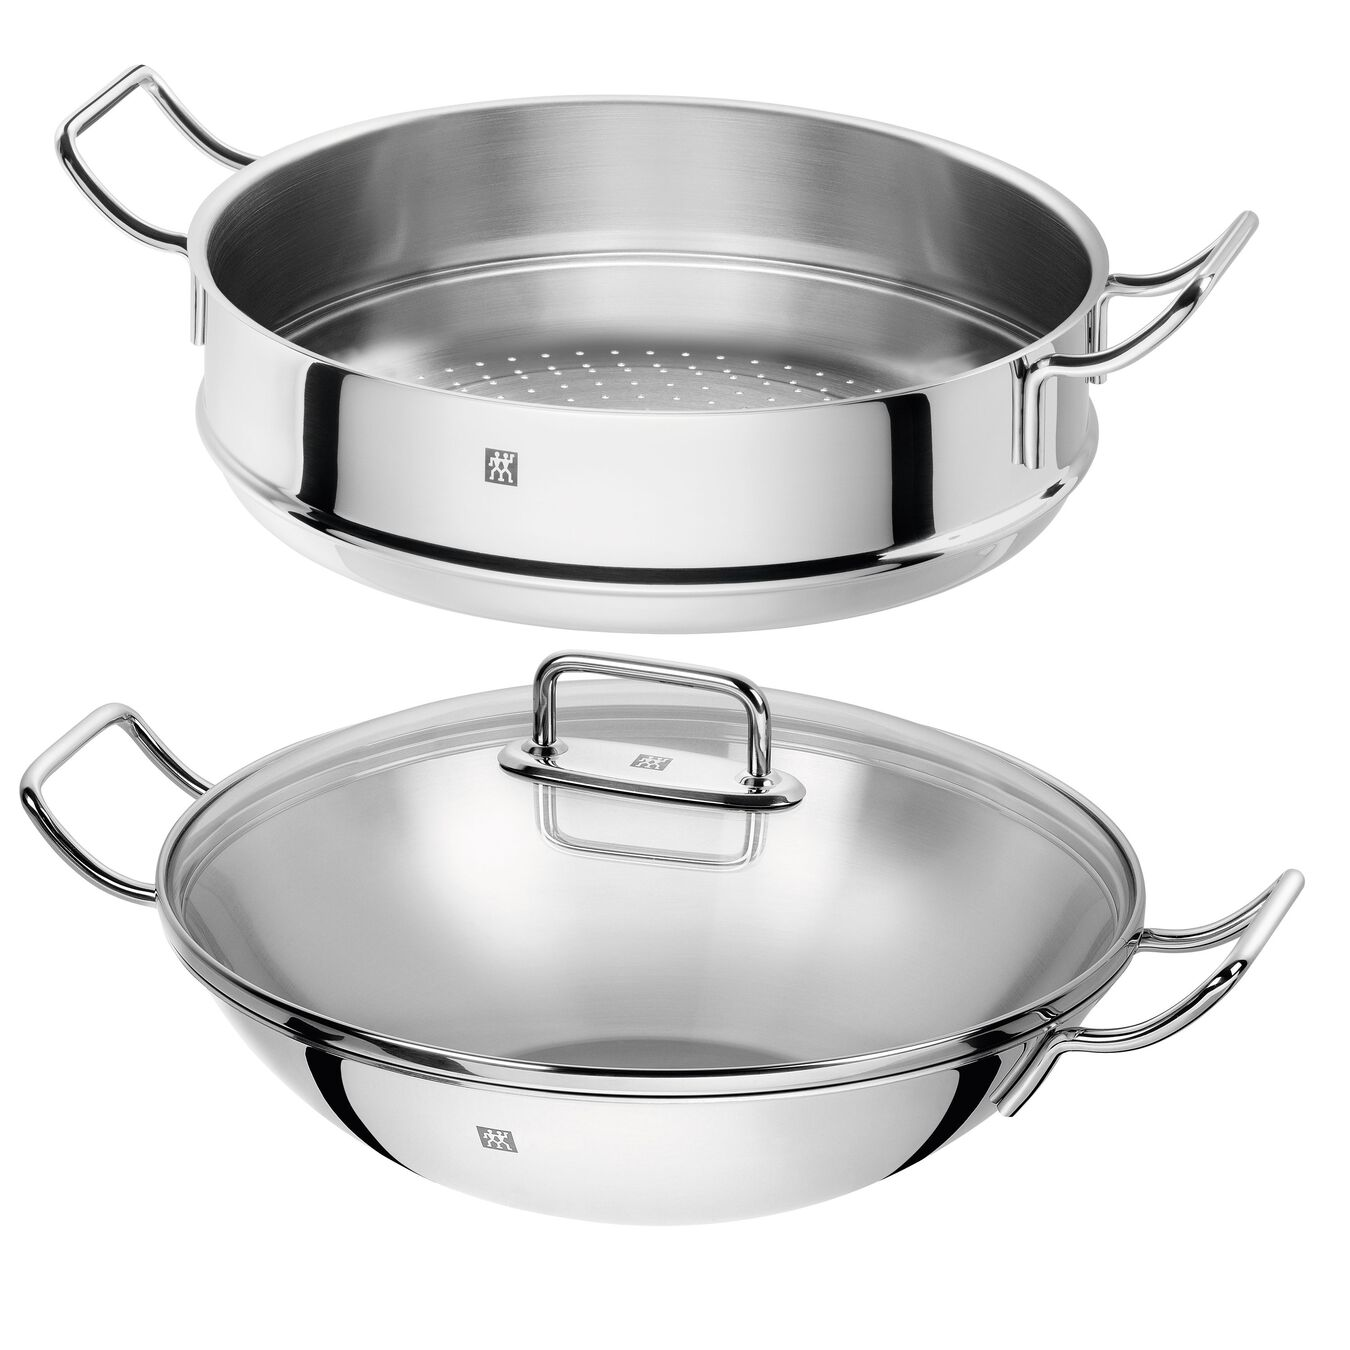 32 cm / 12.5 inch 18/10 Stainless Steel Wok With Steamer,,large 1